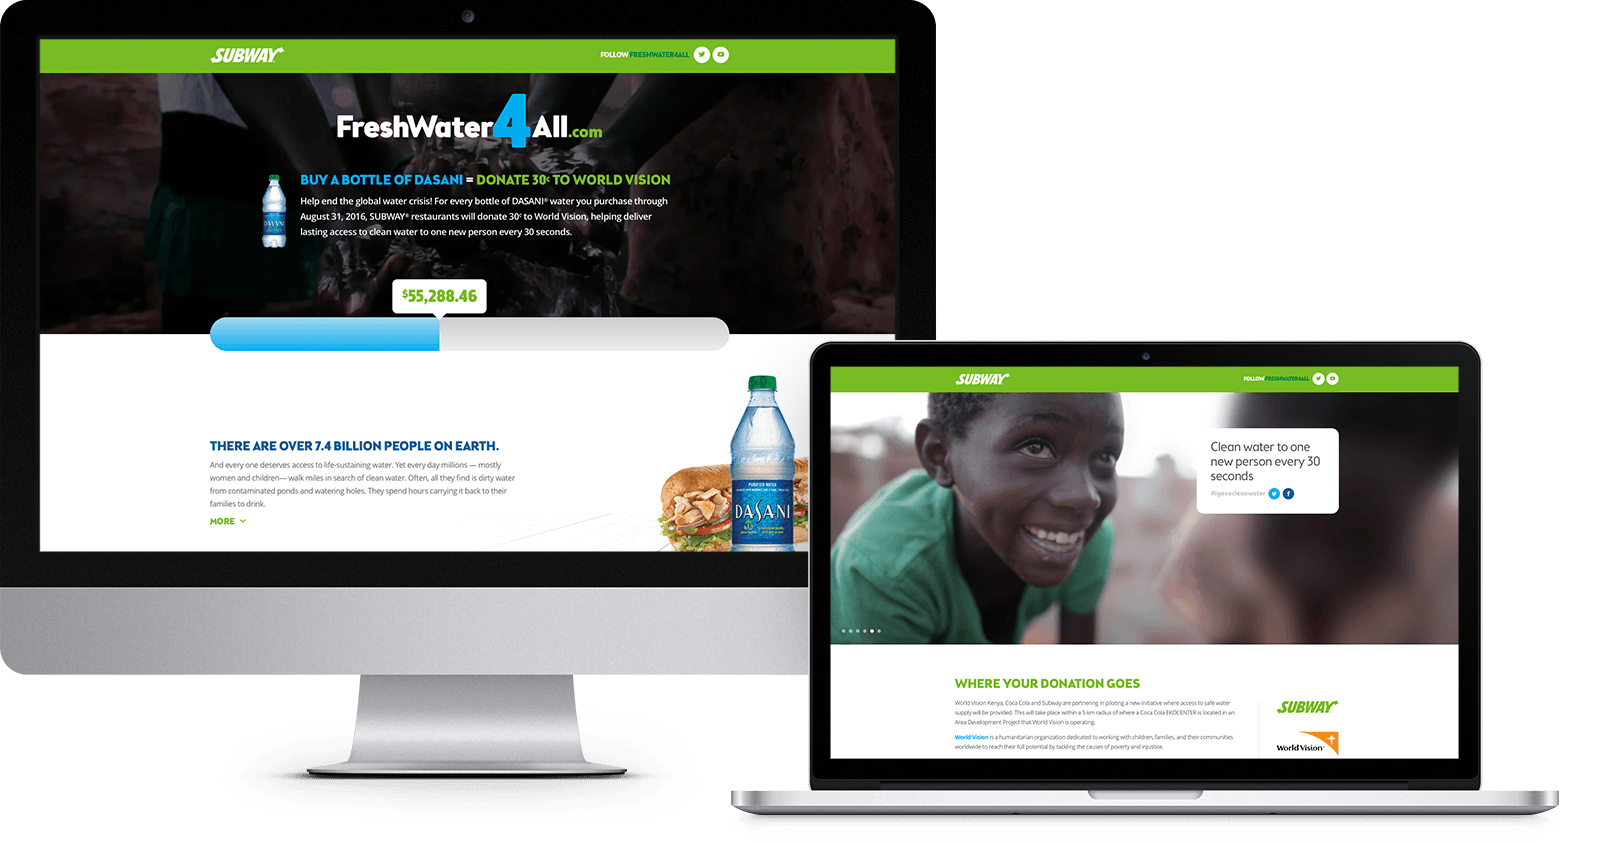 Subway: FreshWater4All landing page